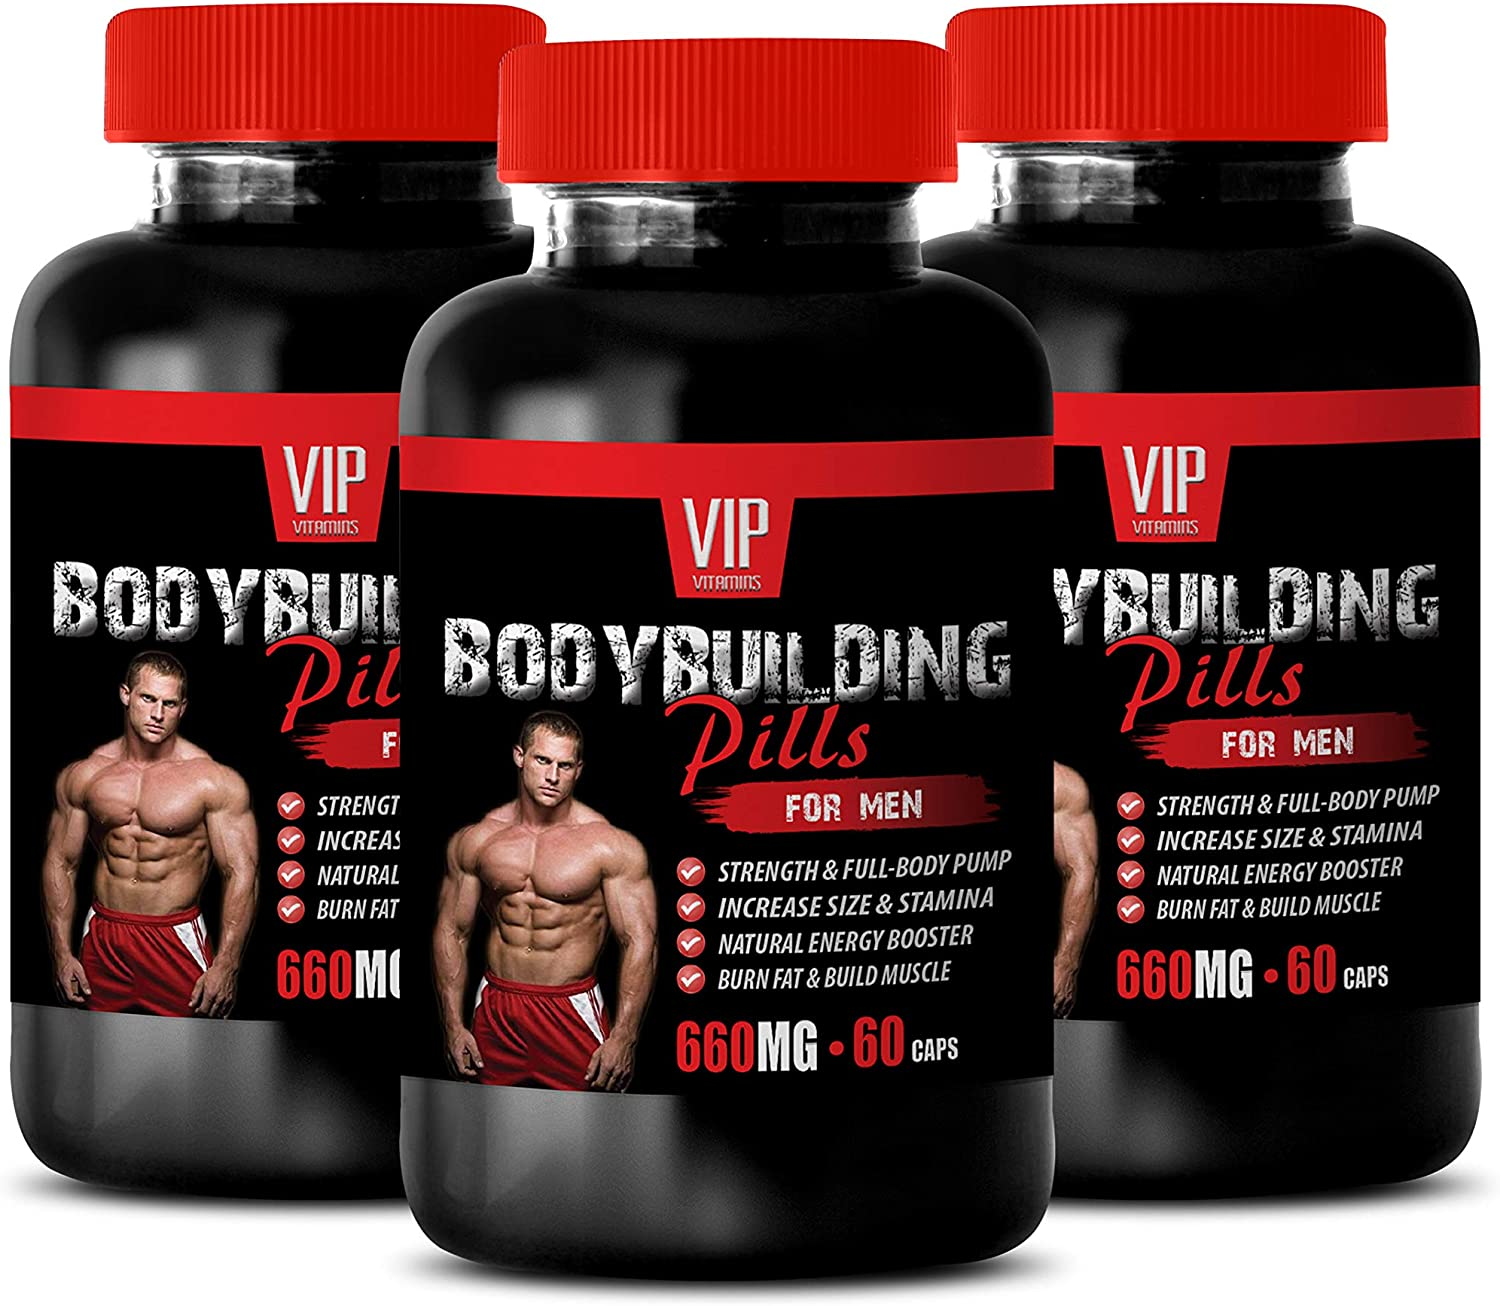 Bodybuilding Supplements for Muscle Growth - Bodybuilding Pills for Men - Alpha lipoic Acid Dietary Supplement Capsules - 3 Bottles 180 Capsules